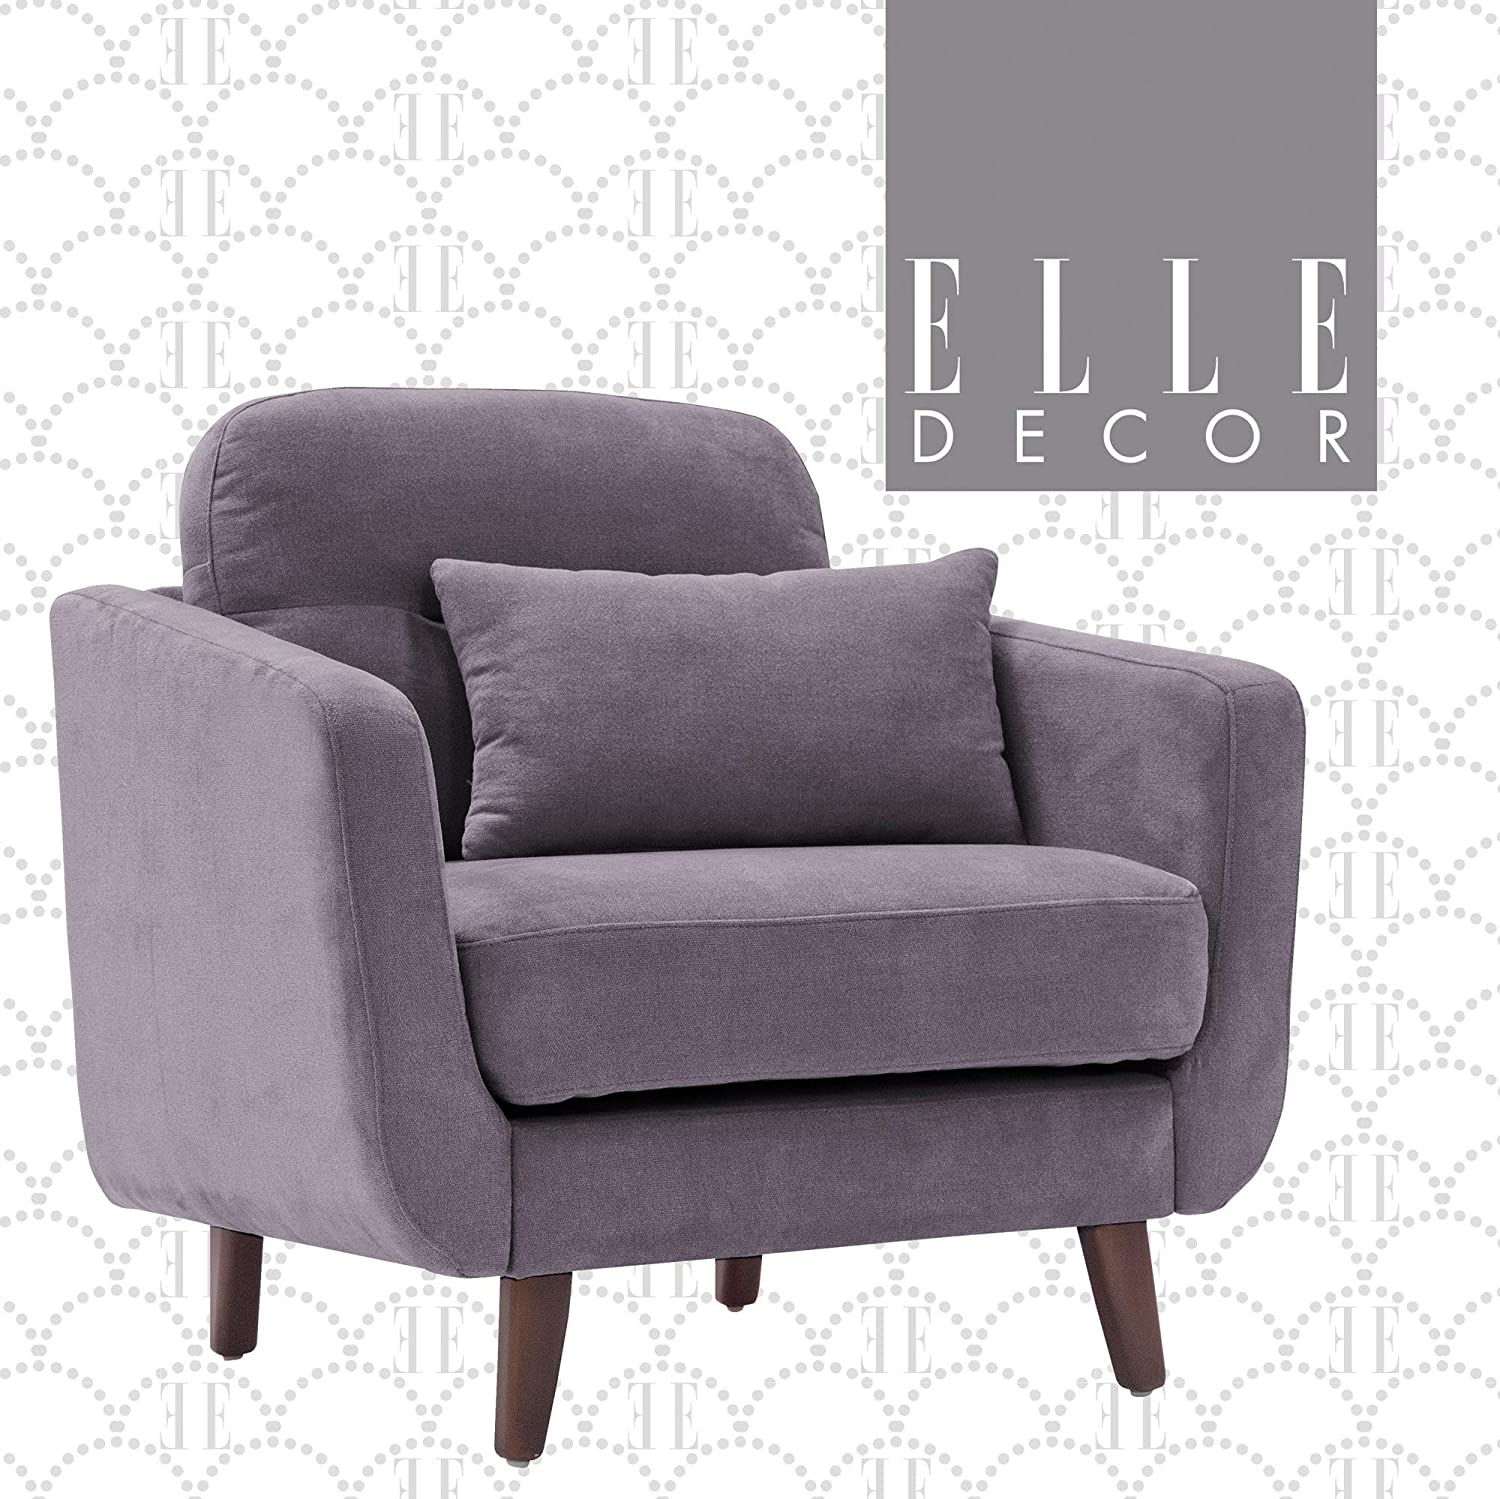 Elle Decor Chloe Upholstered Living Room Armchair, Fabric Couch, Mid-Century Modern Tufted Chair with Padded Back Cushion, Arm, Blue Gray